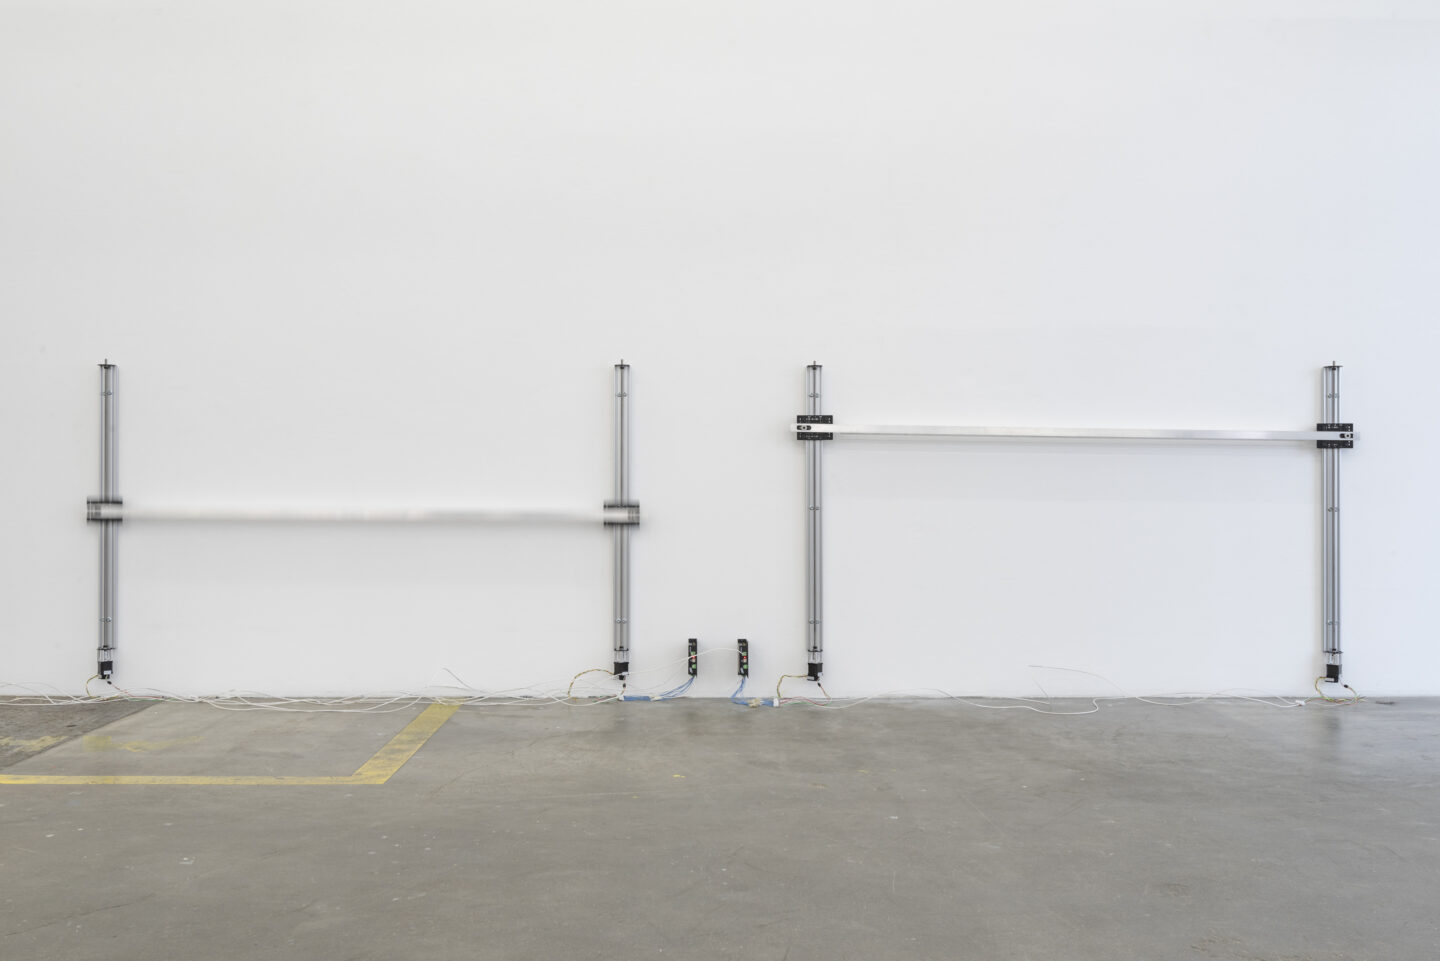 Exhibition View Aaron Flint Jamison Soloshow «Opportunity Zones; view on Applicate 2.1, 2.2, 2019 (detail)» at Kunst Halle Sankt Gallen, St. Gallen, 2019 / Photo: Sebastian Schaub / Courtesy: the artist and Kunst Halle Sankt Gallen